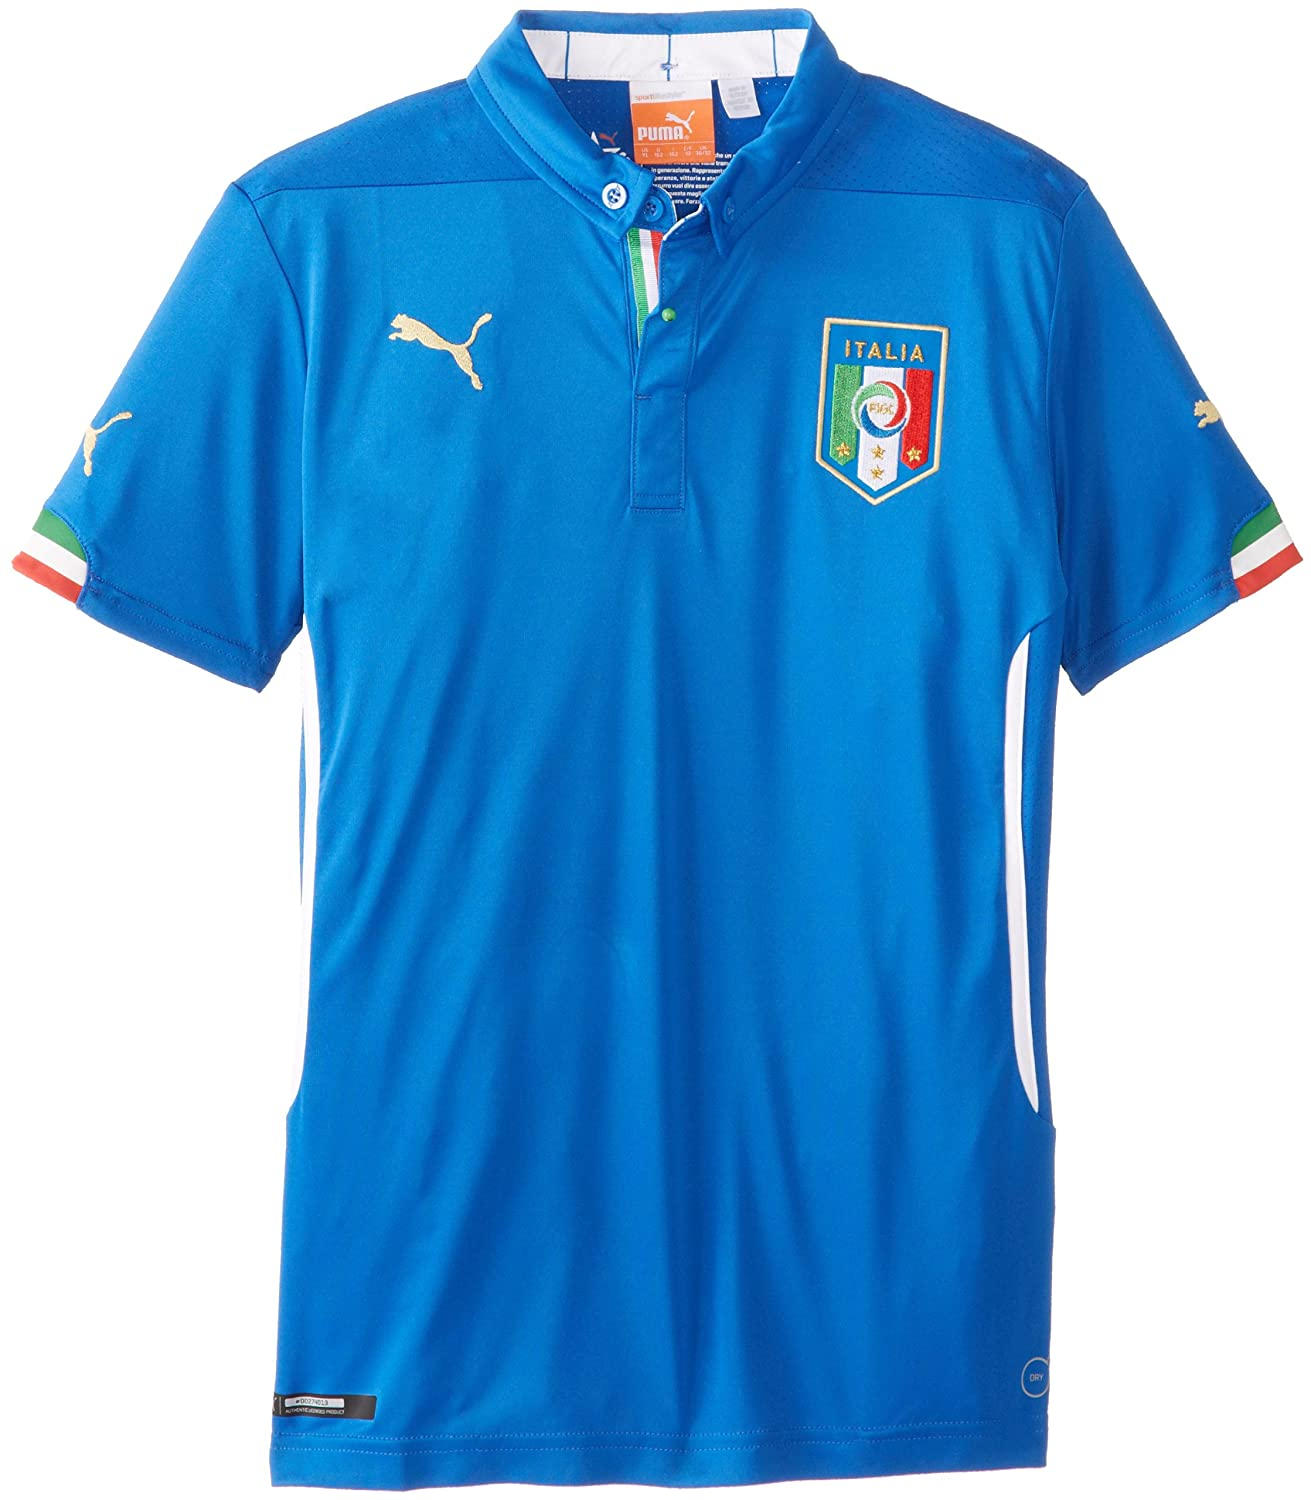 faed71f2a7d Amazon.com  Puma Boy s Italia Home Replica Soccer Jersey  Clothing